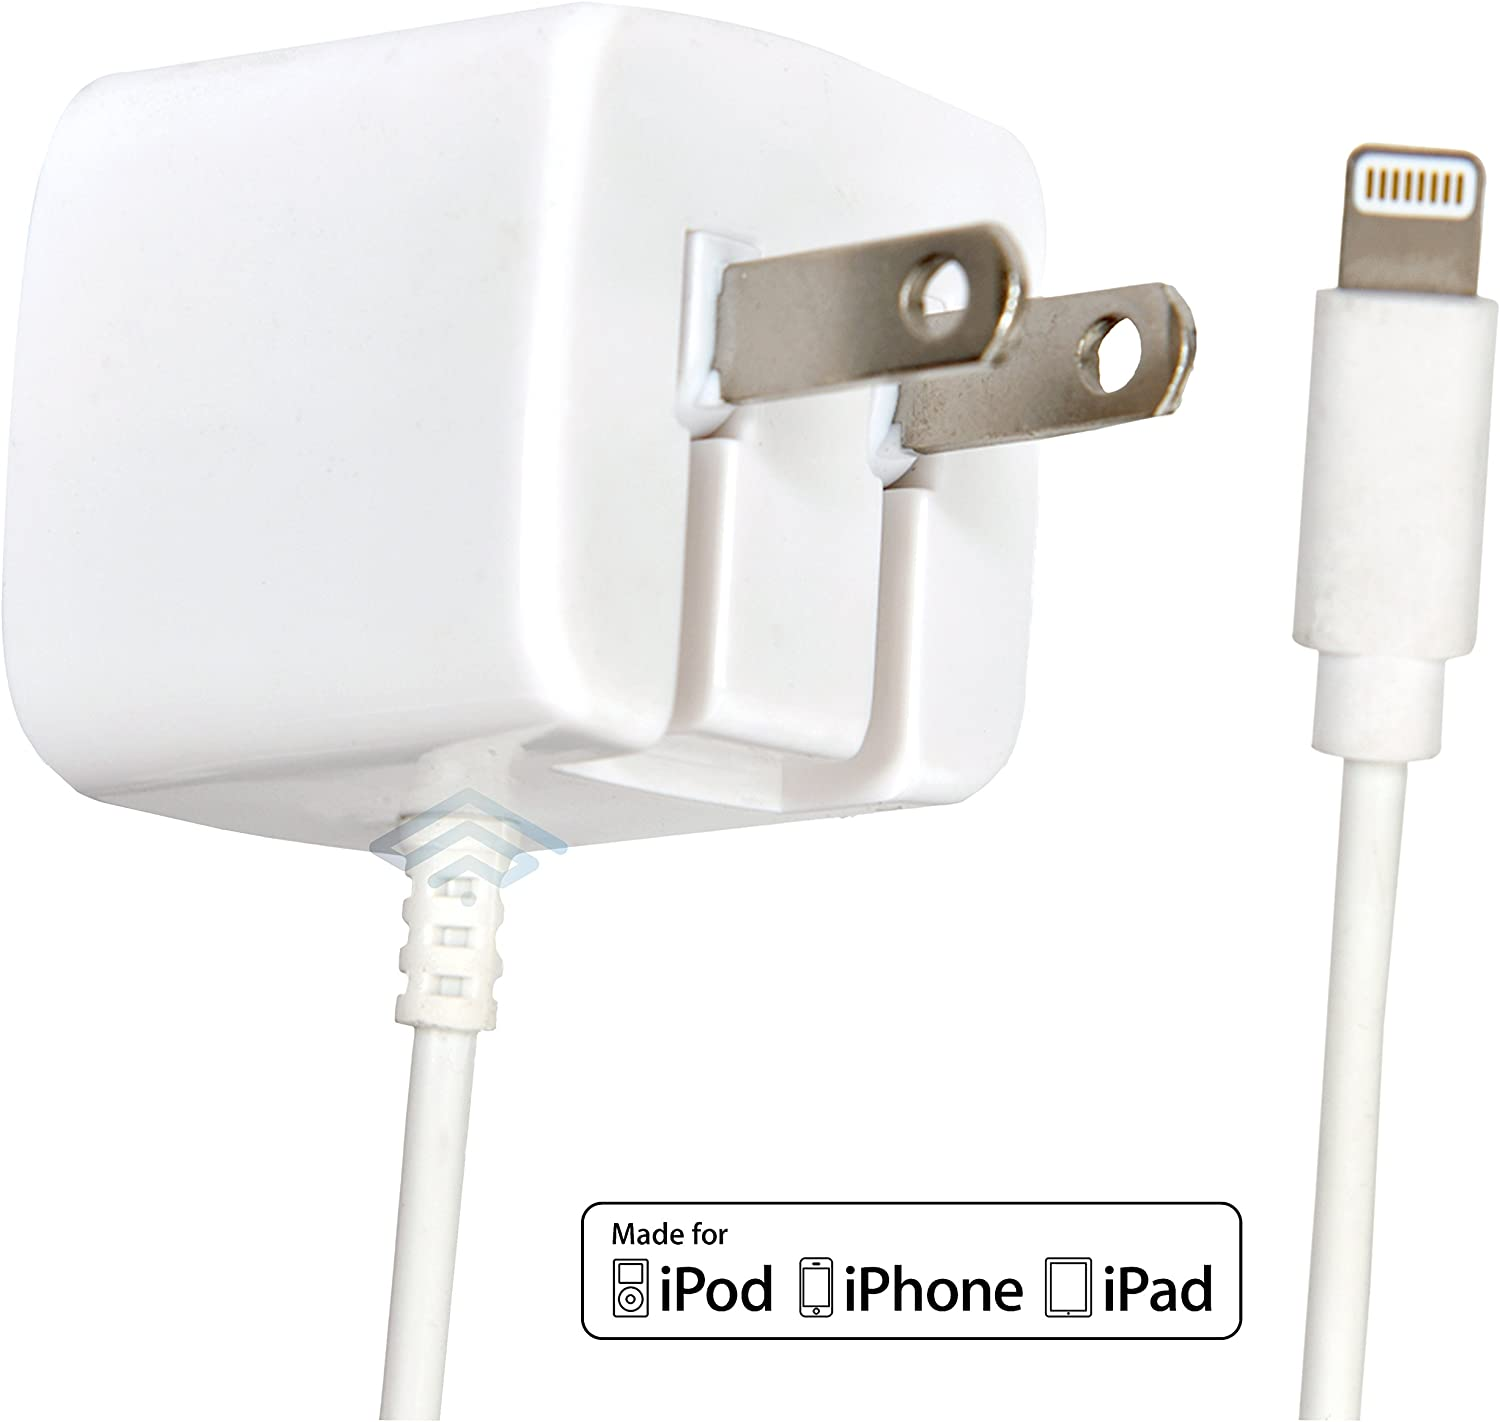 Apple Certified iPhone Lightning Charger Wall Plug for iPhone 11 Pro XS Max X XR XS SE 8 Plus 7 6S 6 5S 5 5C Pins Fold 2.1a Rapid Power Take